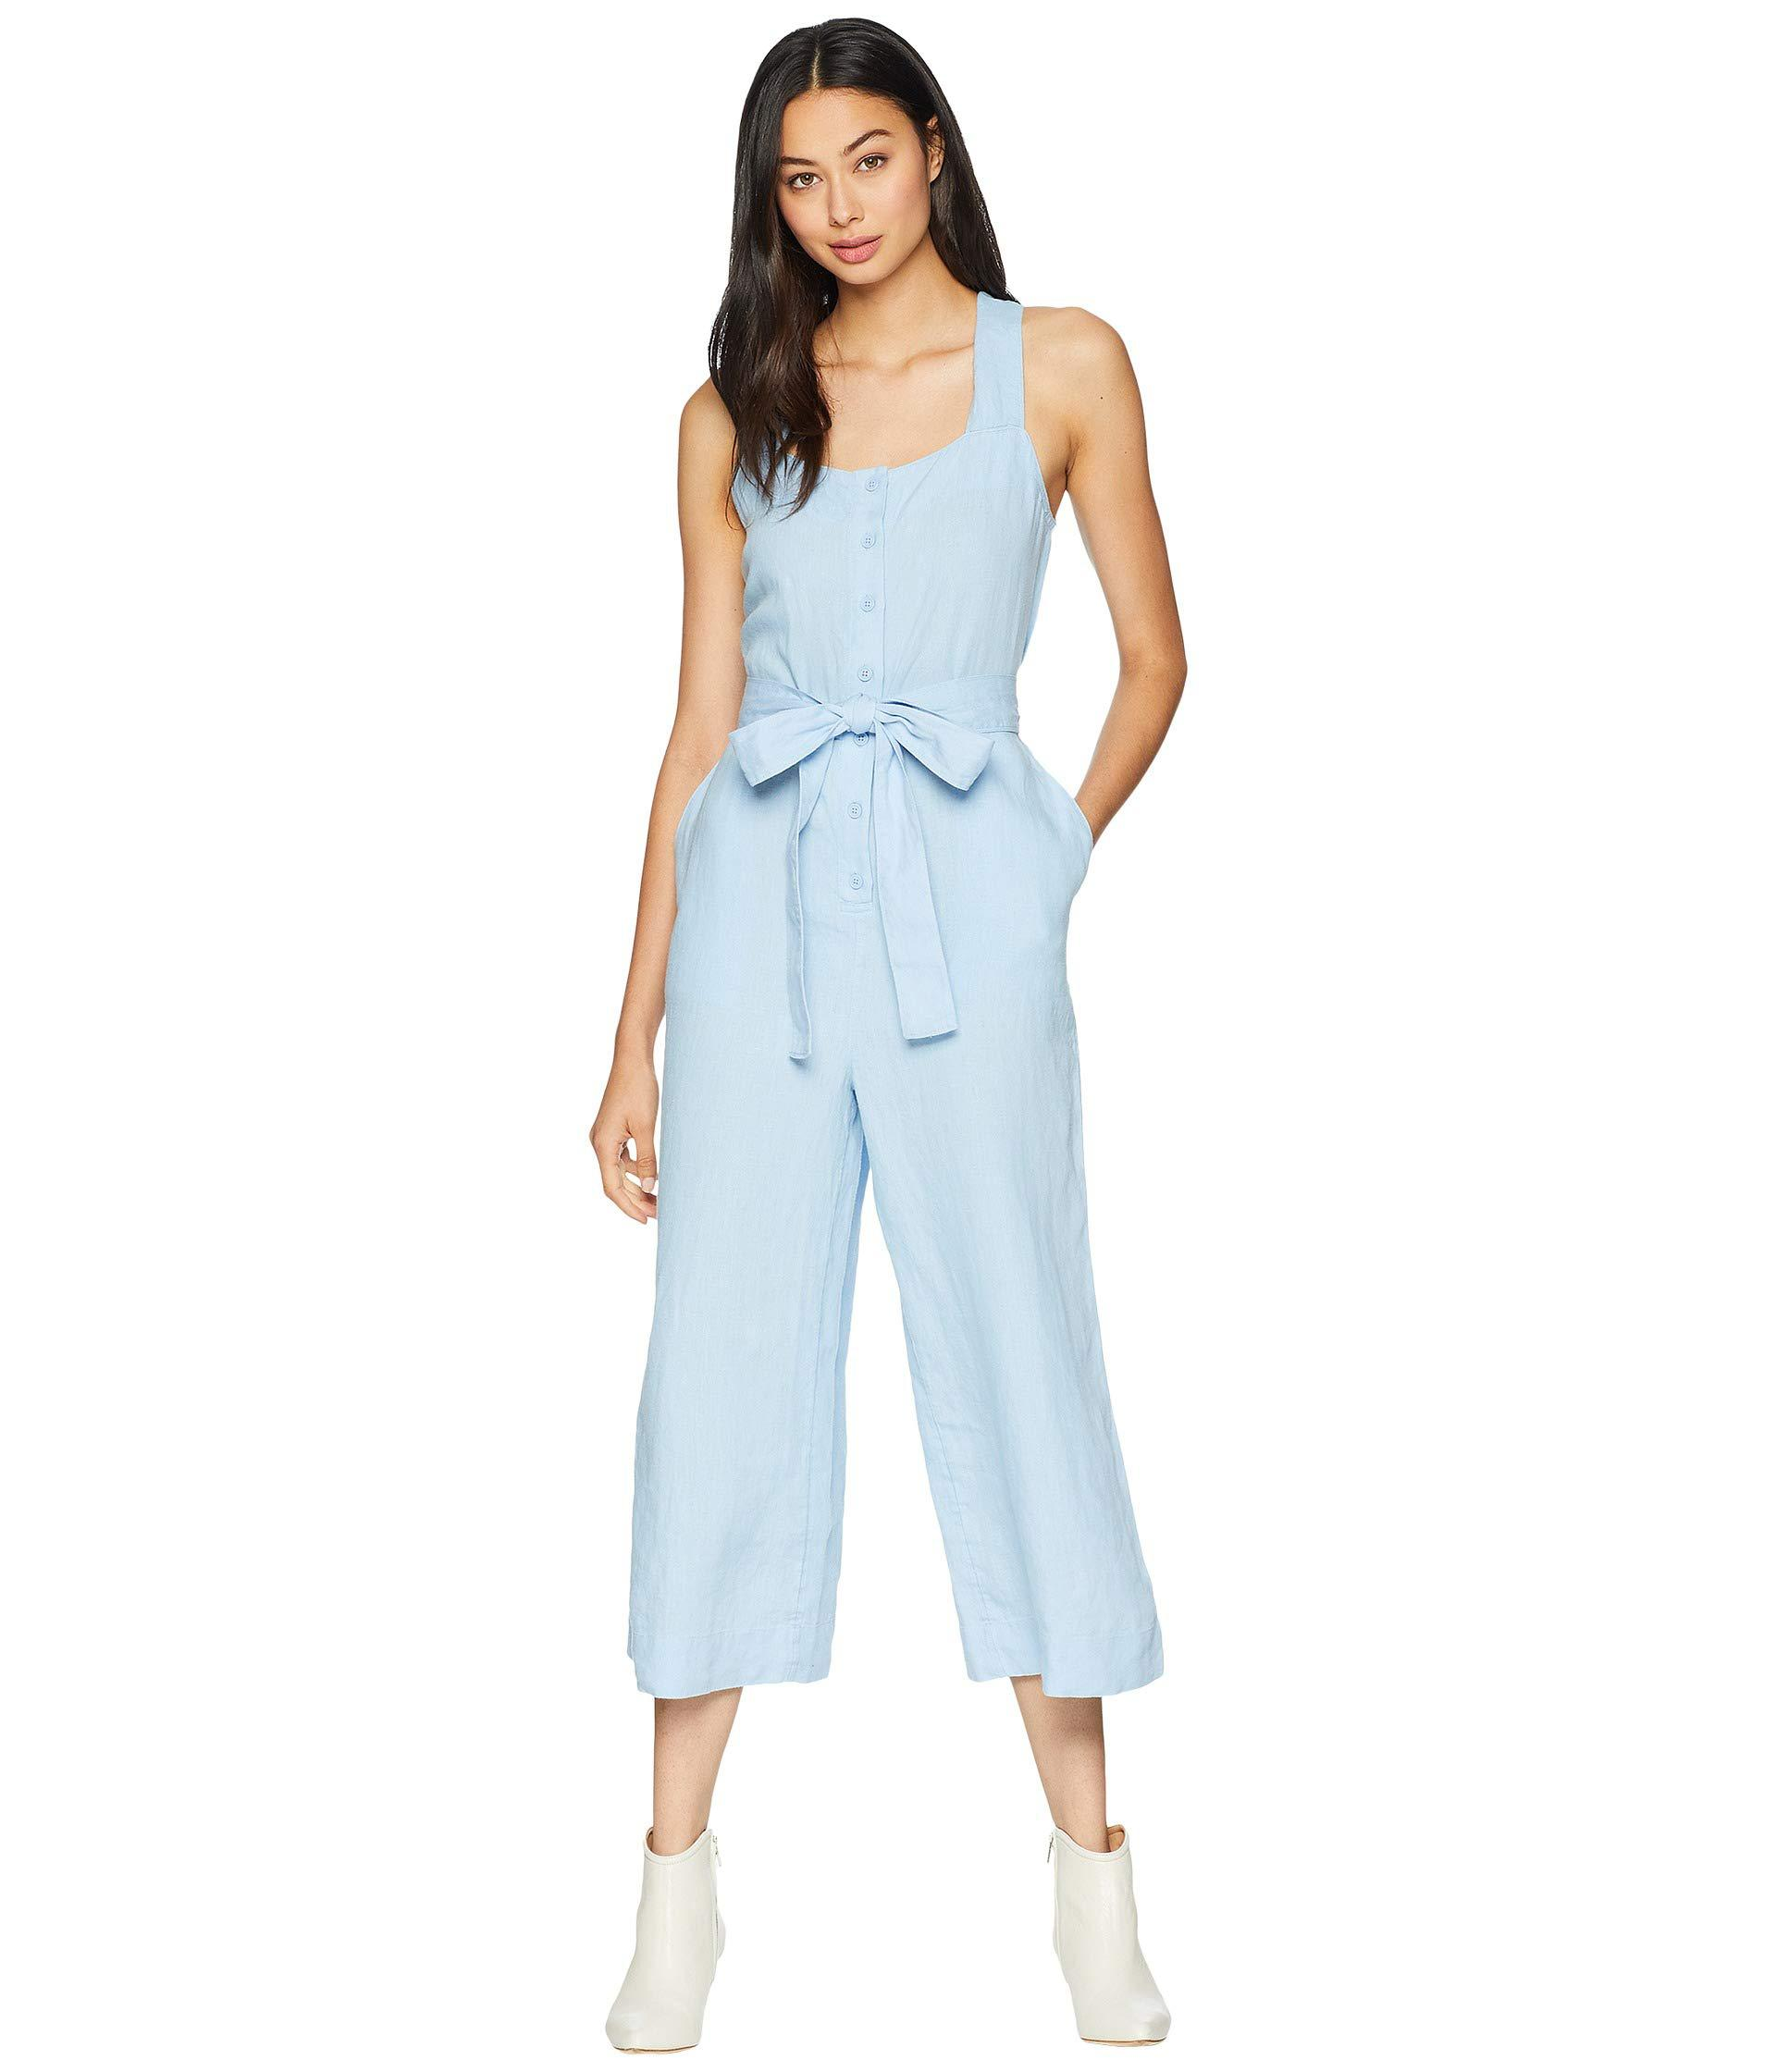 ea461745388 Lyst - Juicy Couture Washed Linen Jumpsuit in Blue